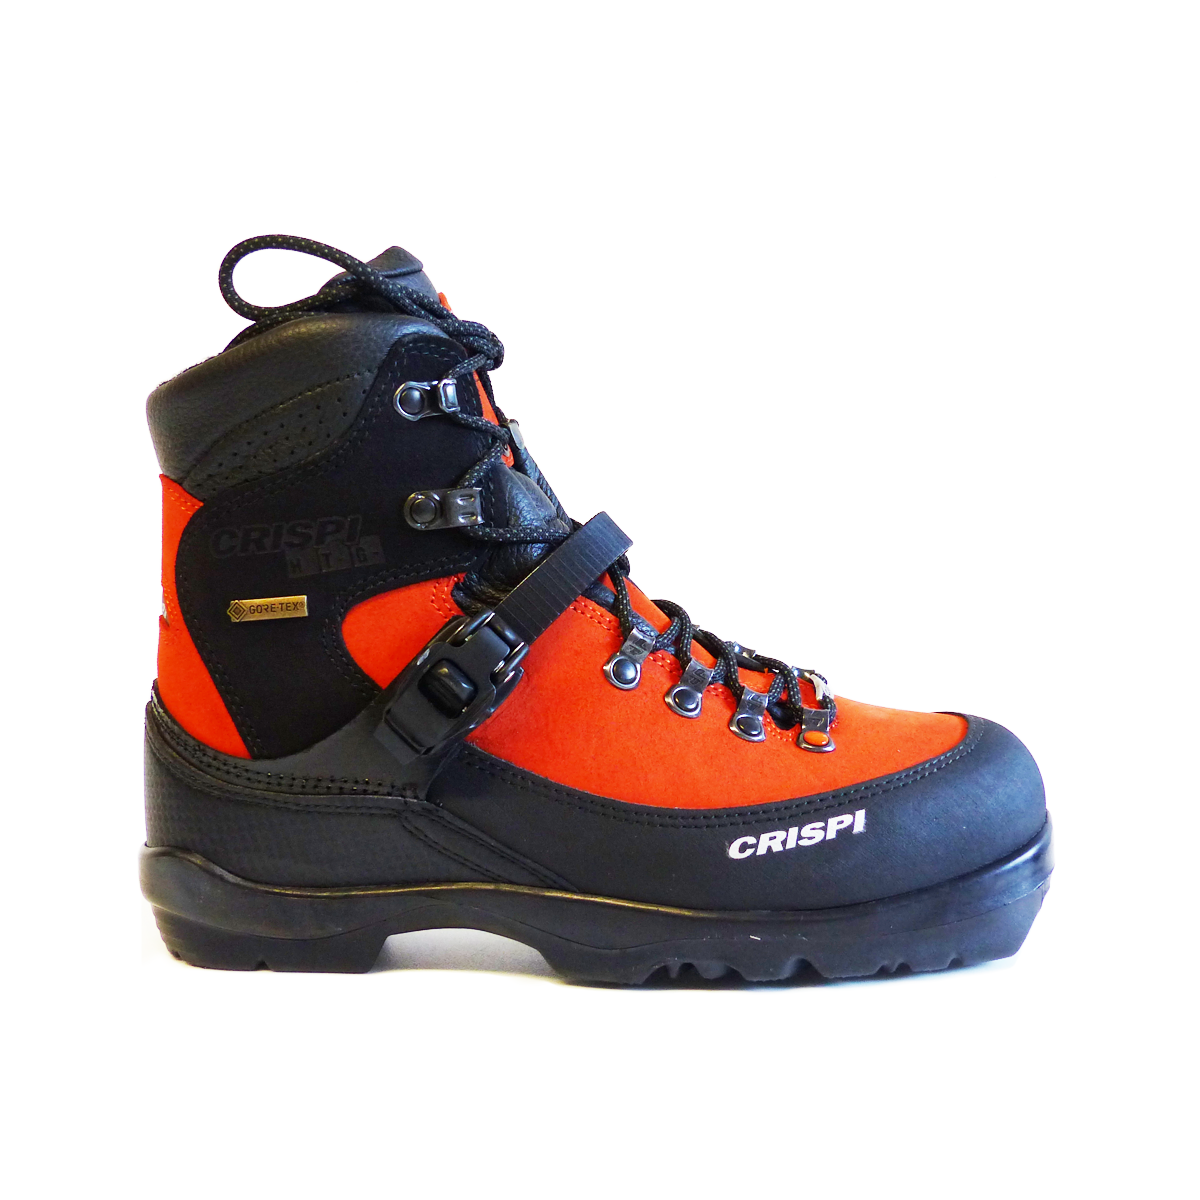 Nordic Walking Shoes Or Boots